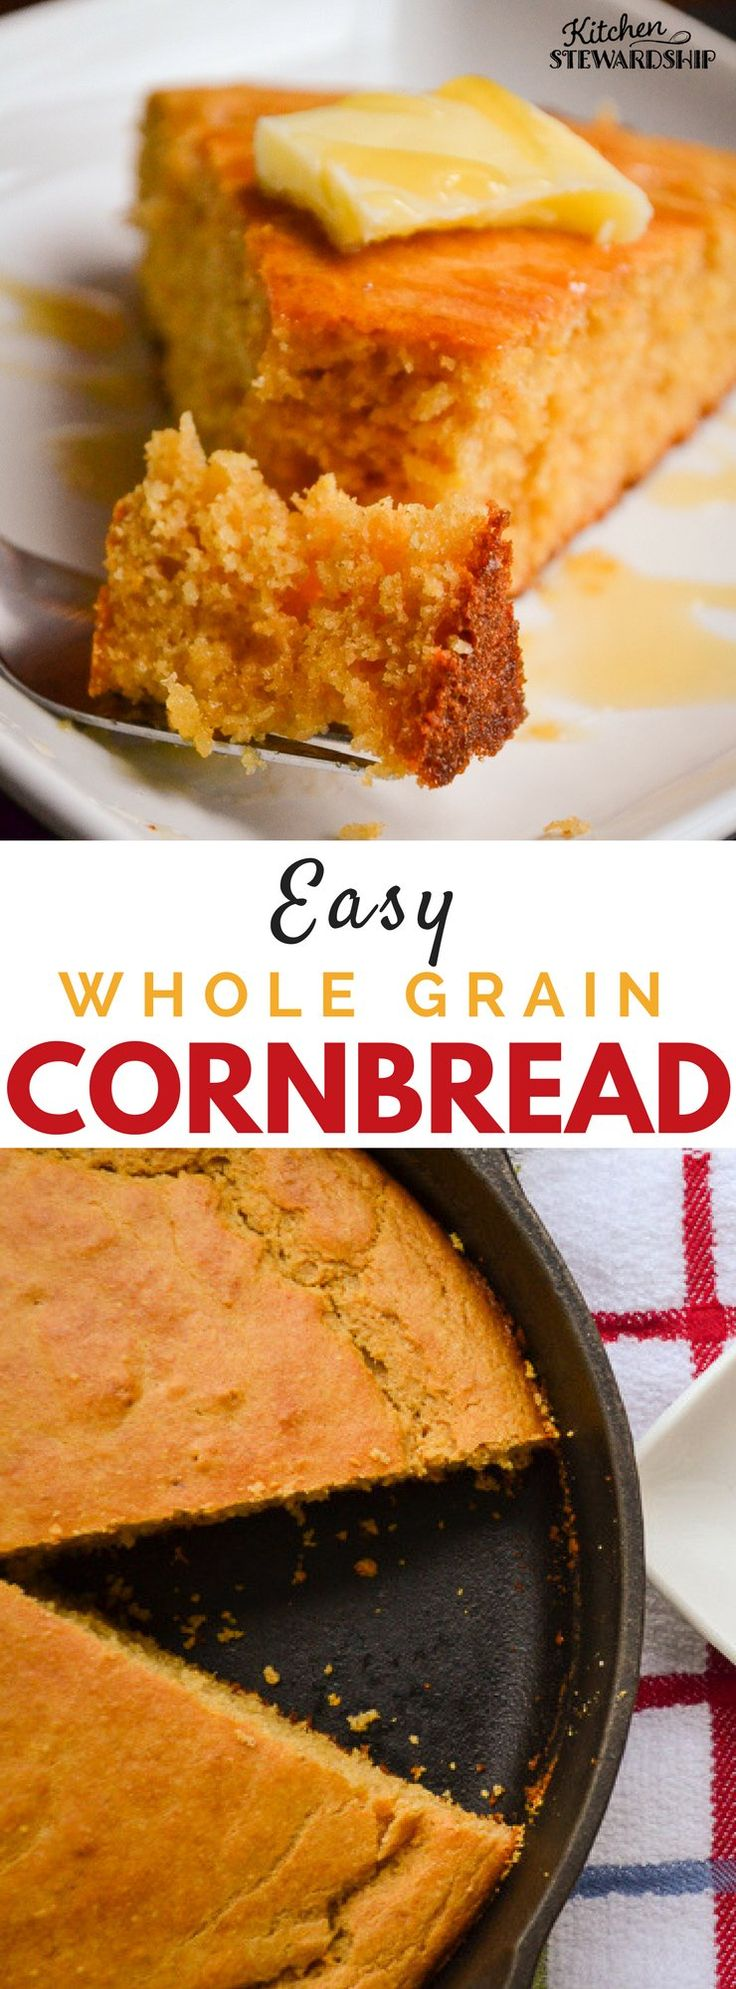 This lightly sweetened whole grain cornbread comes together in minutes and makes the perfect side for your favorite soups and stews.